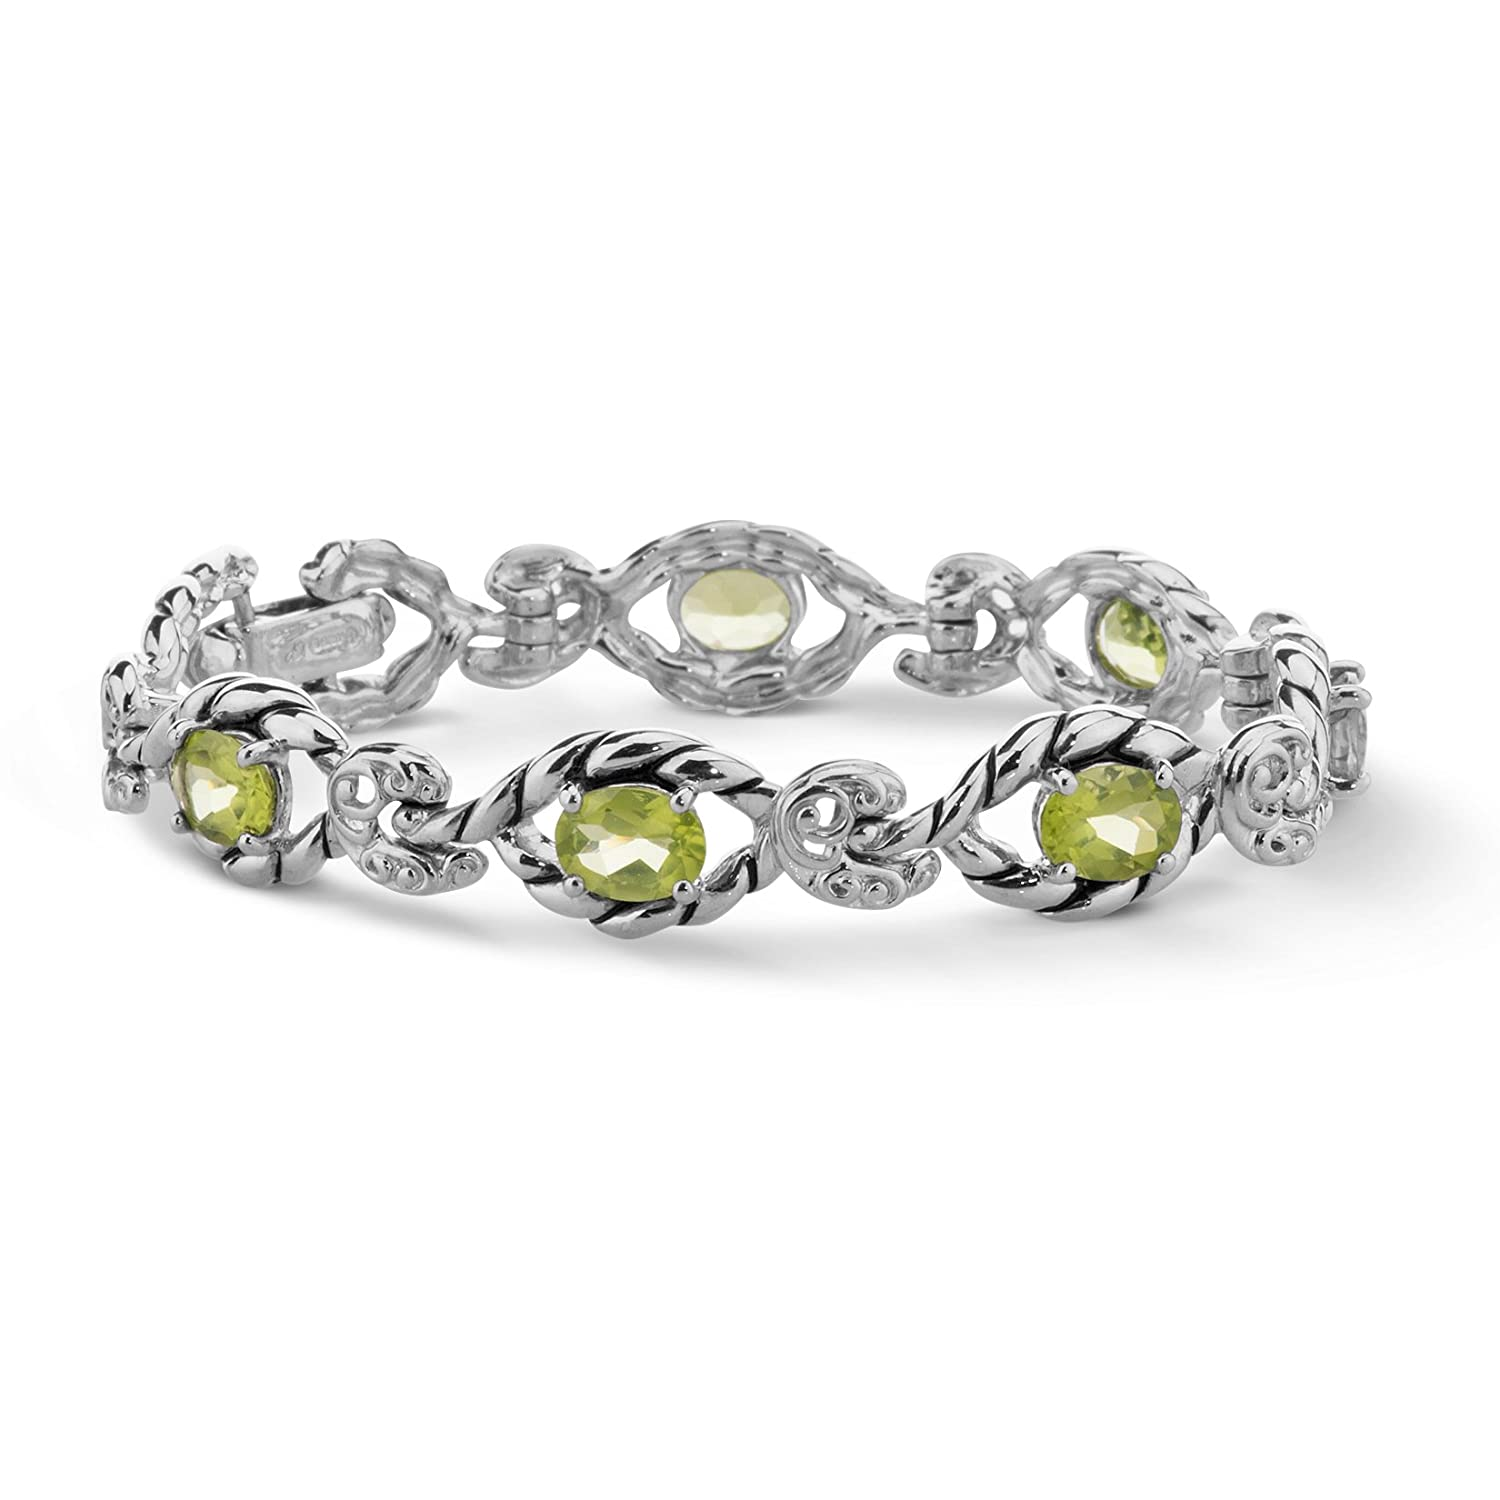 925 Silver Gemstone S M L Link Bracelet with Fold-over Clasp Relios cp2-4750-001-L